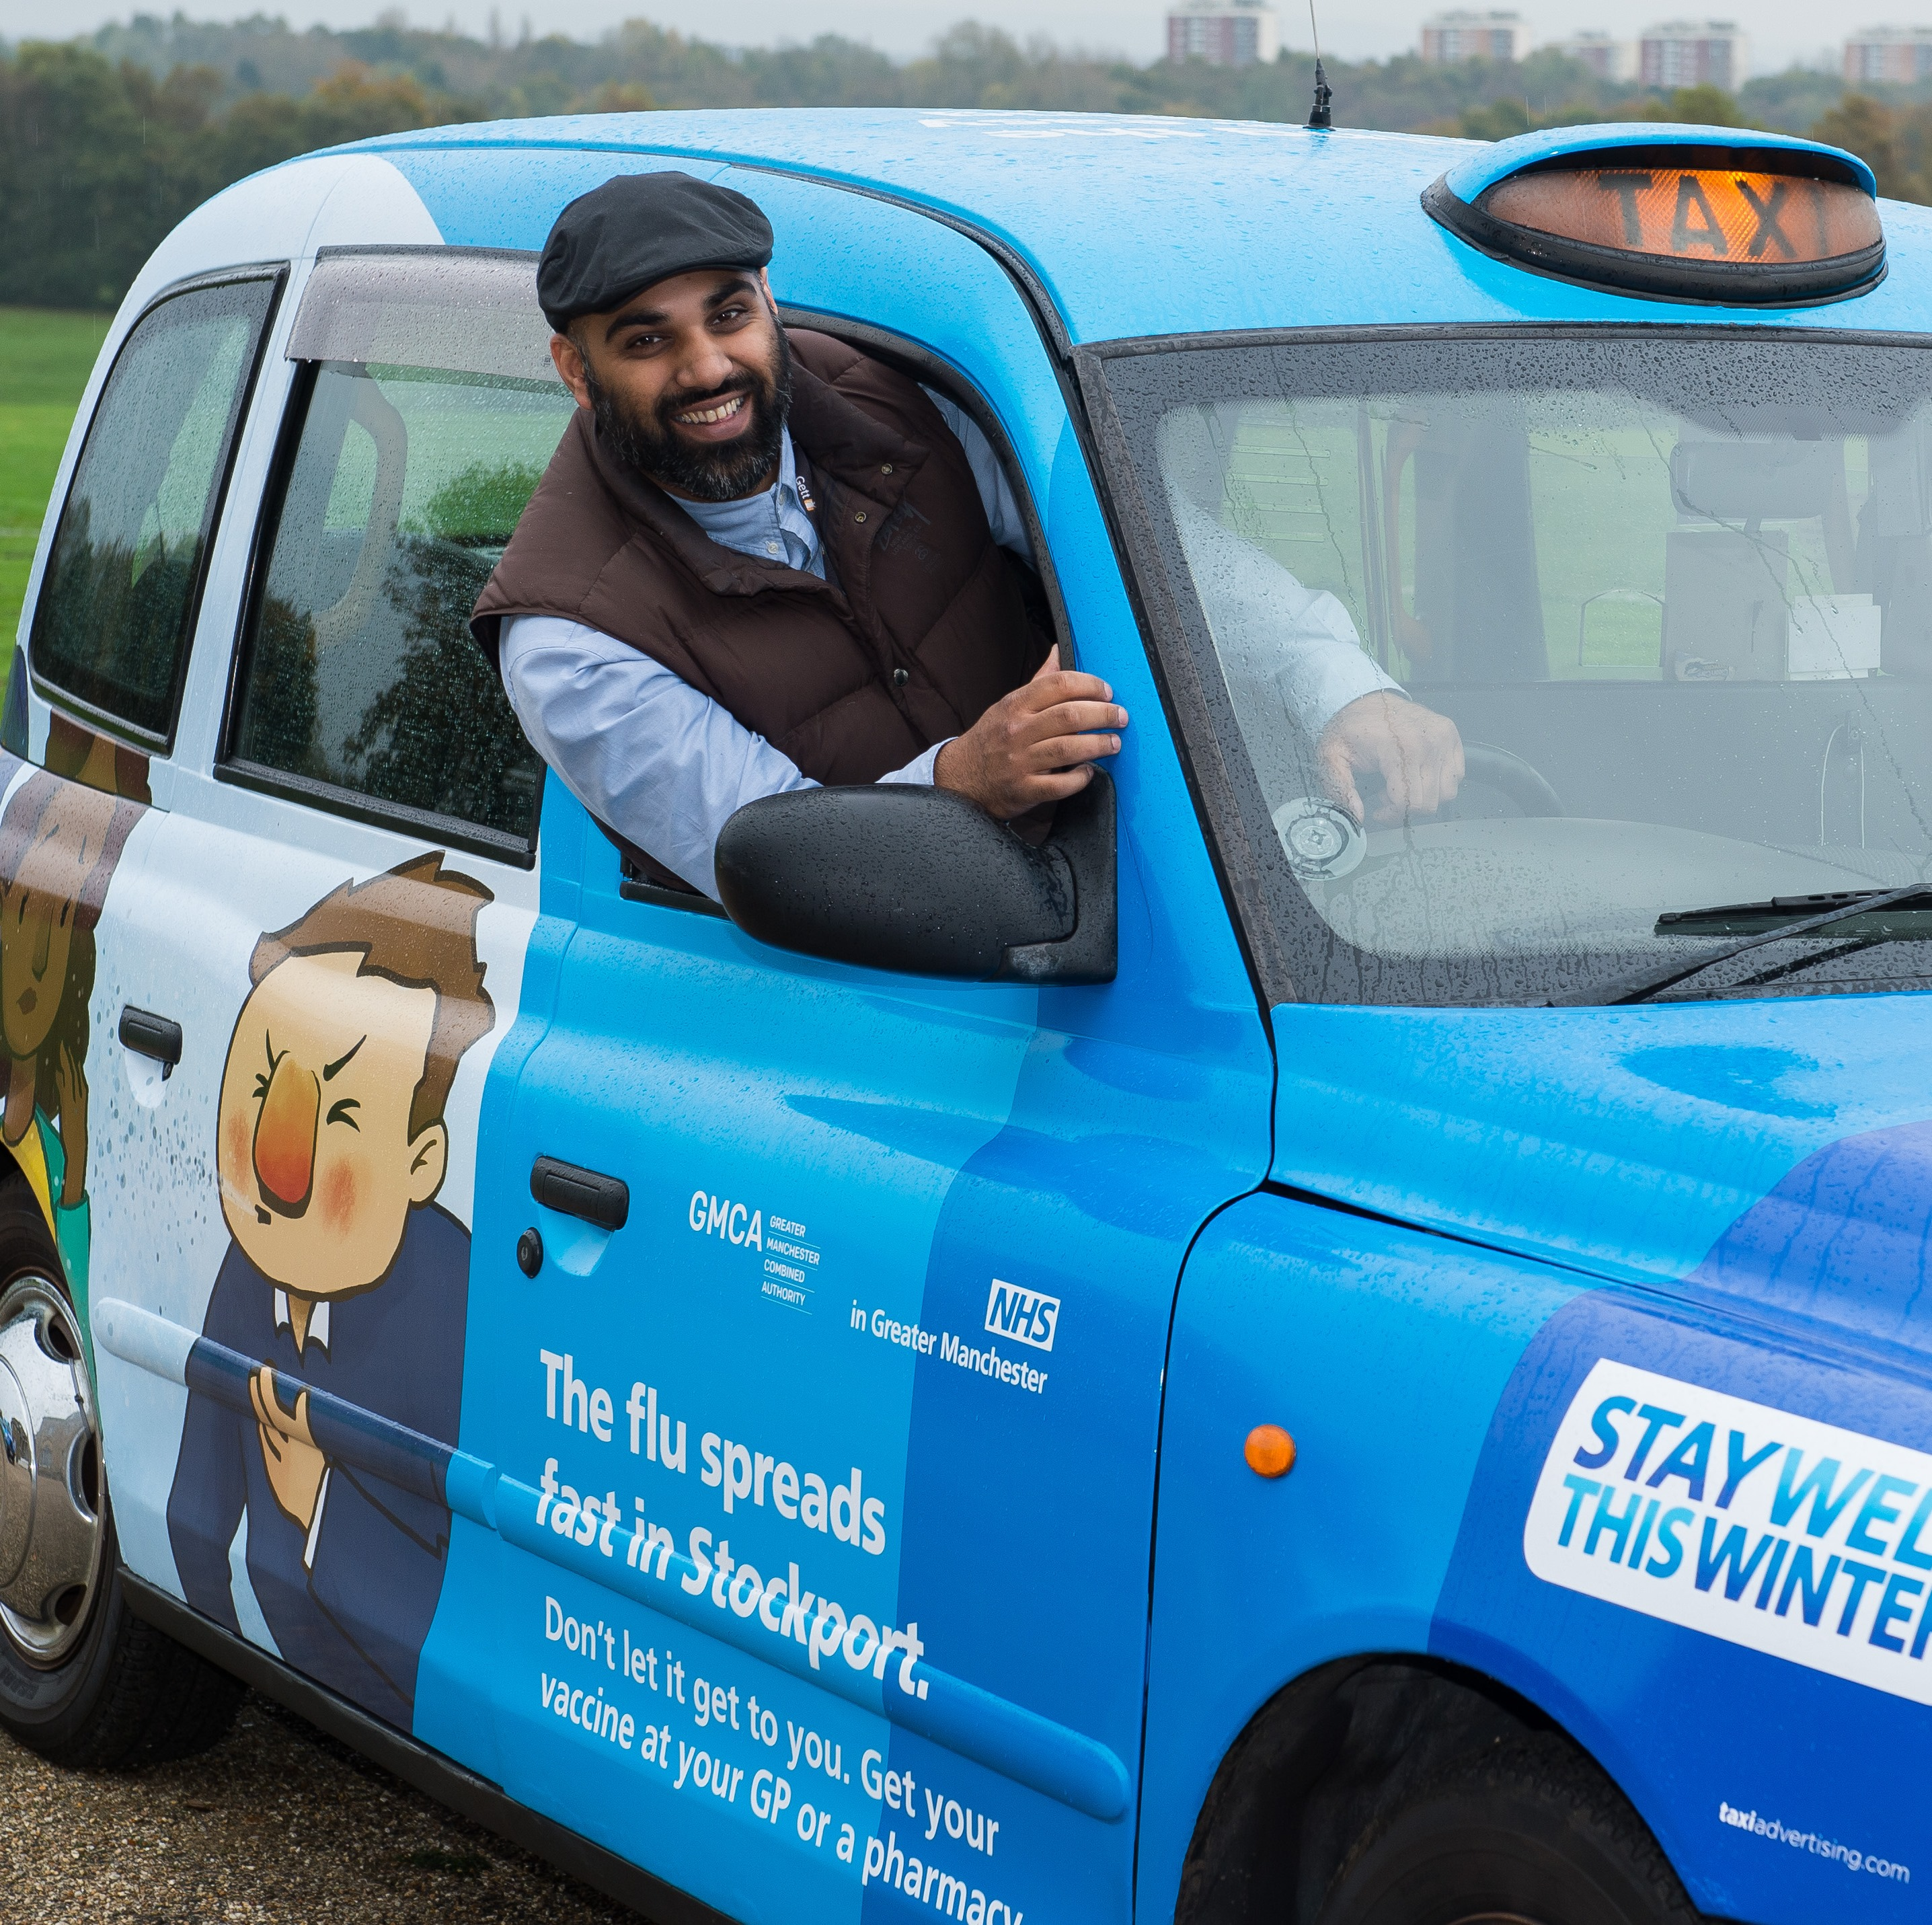 Stockport taxi driver joins fight against flu